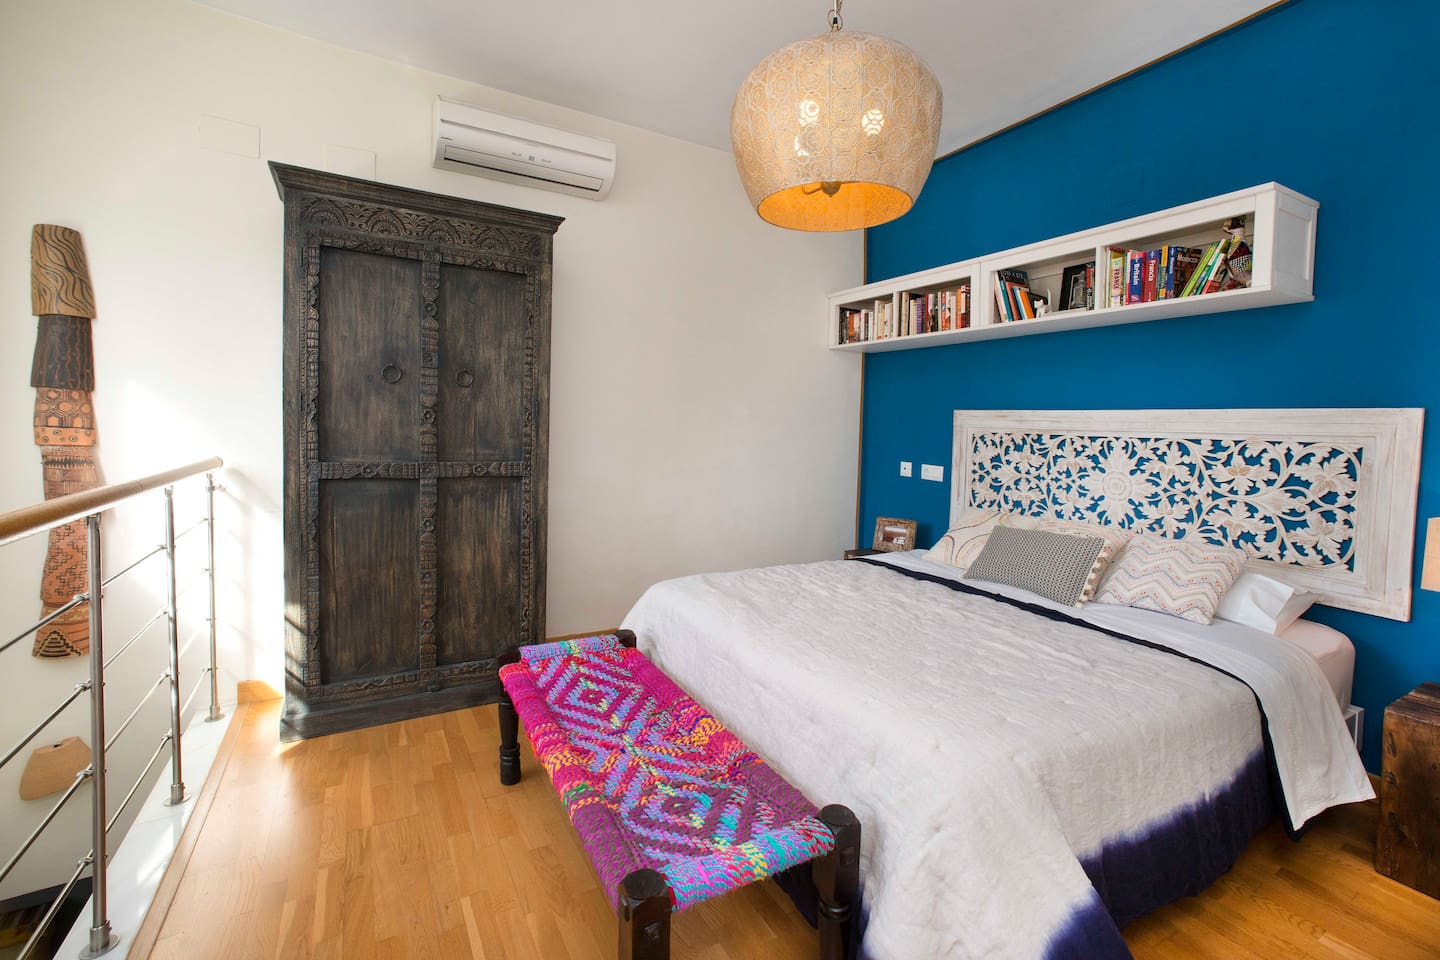 Upstairs bedroom with views of one of Sevilla's oldest churches and markets